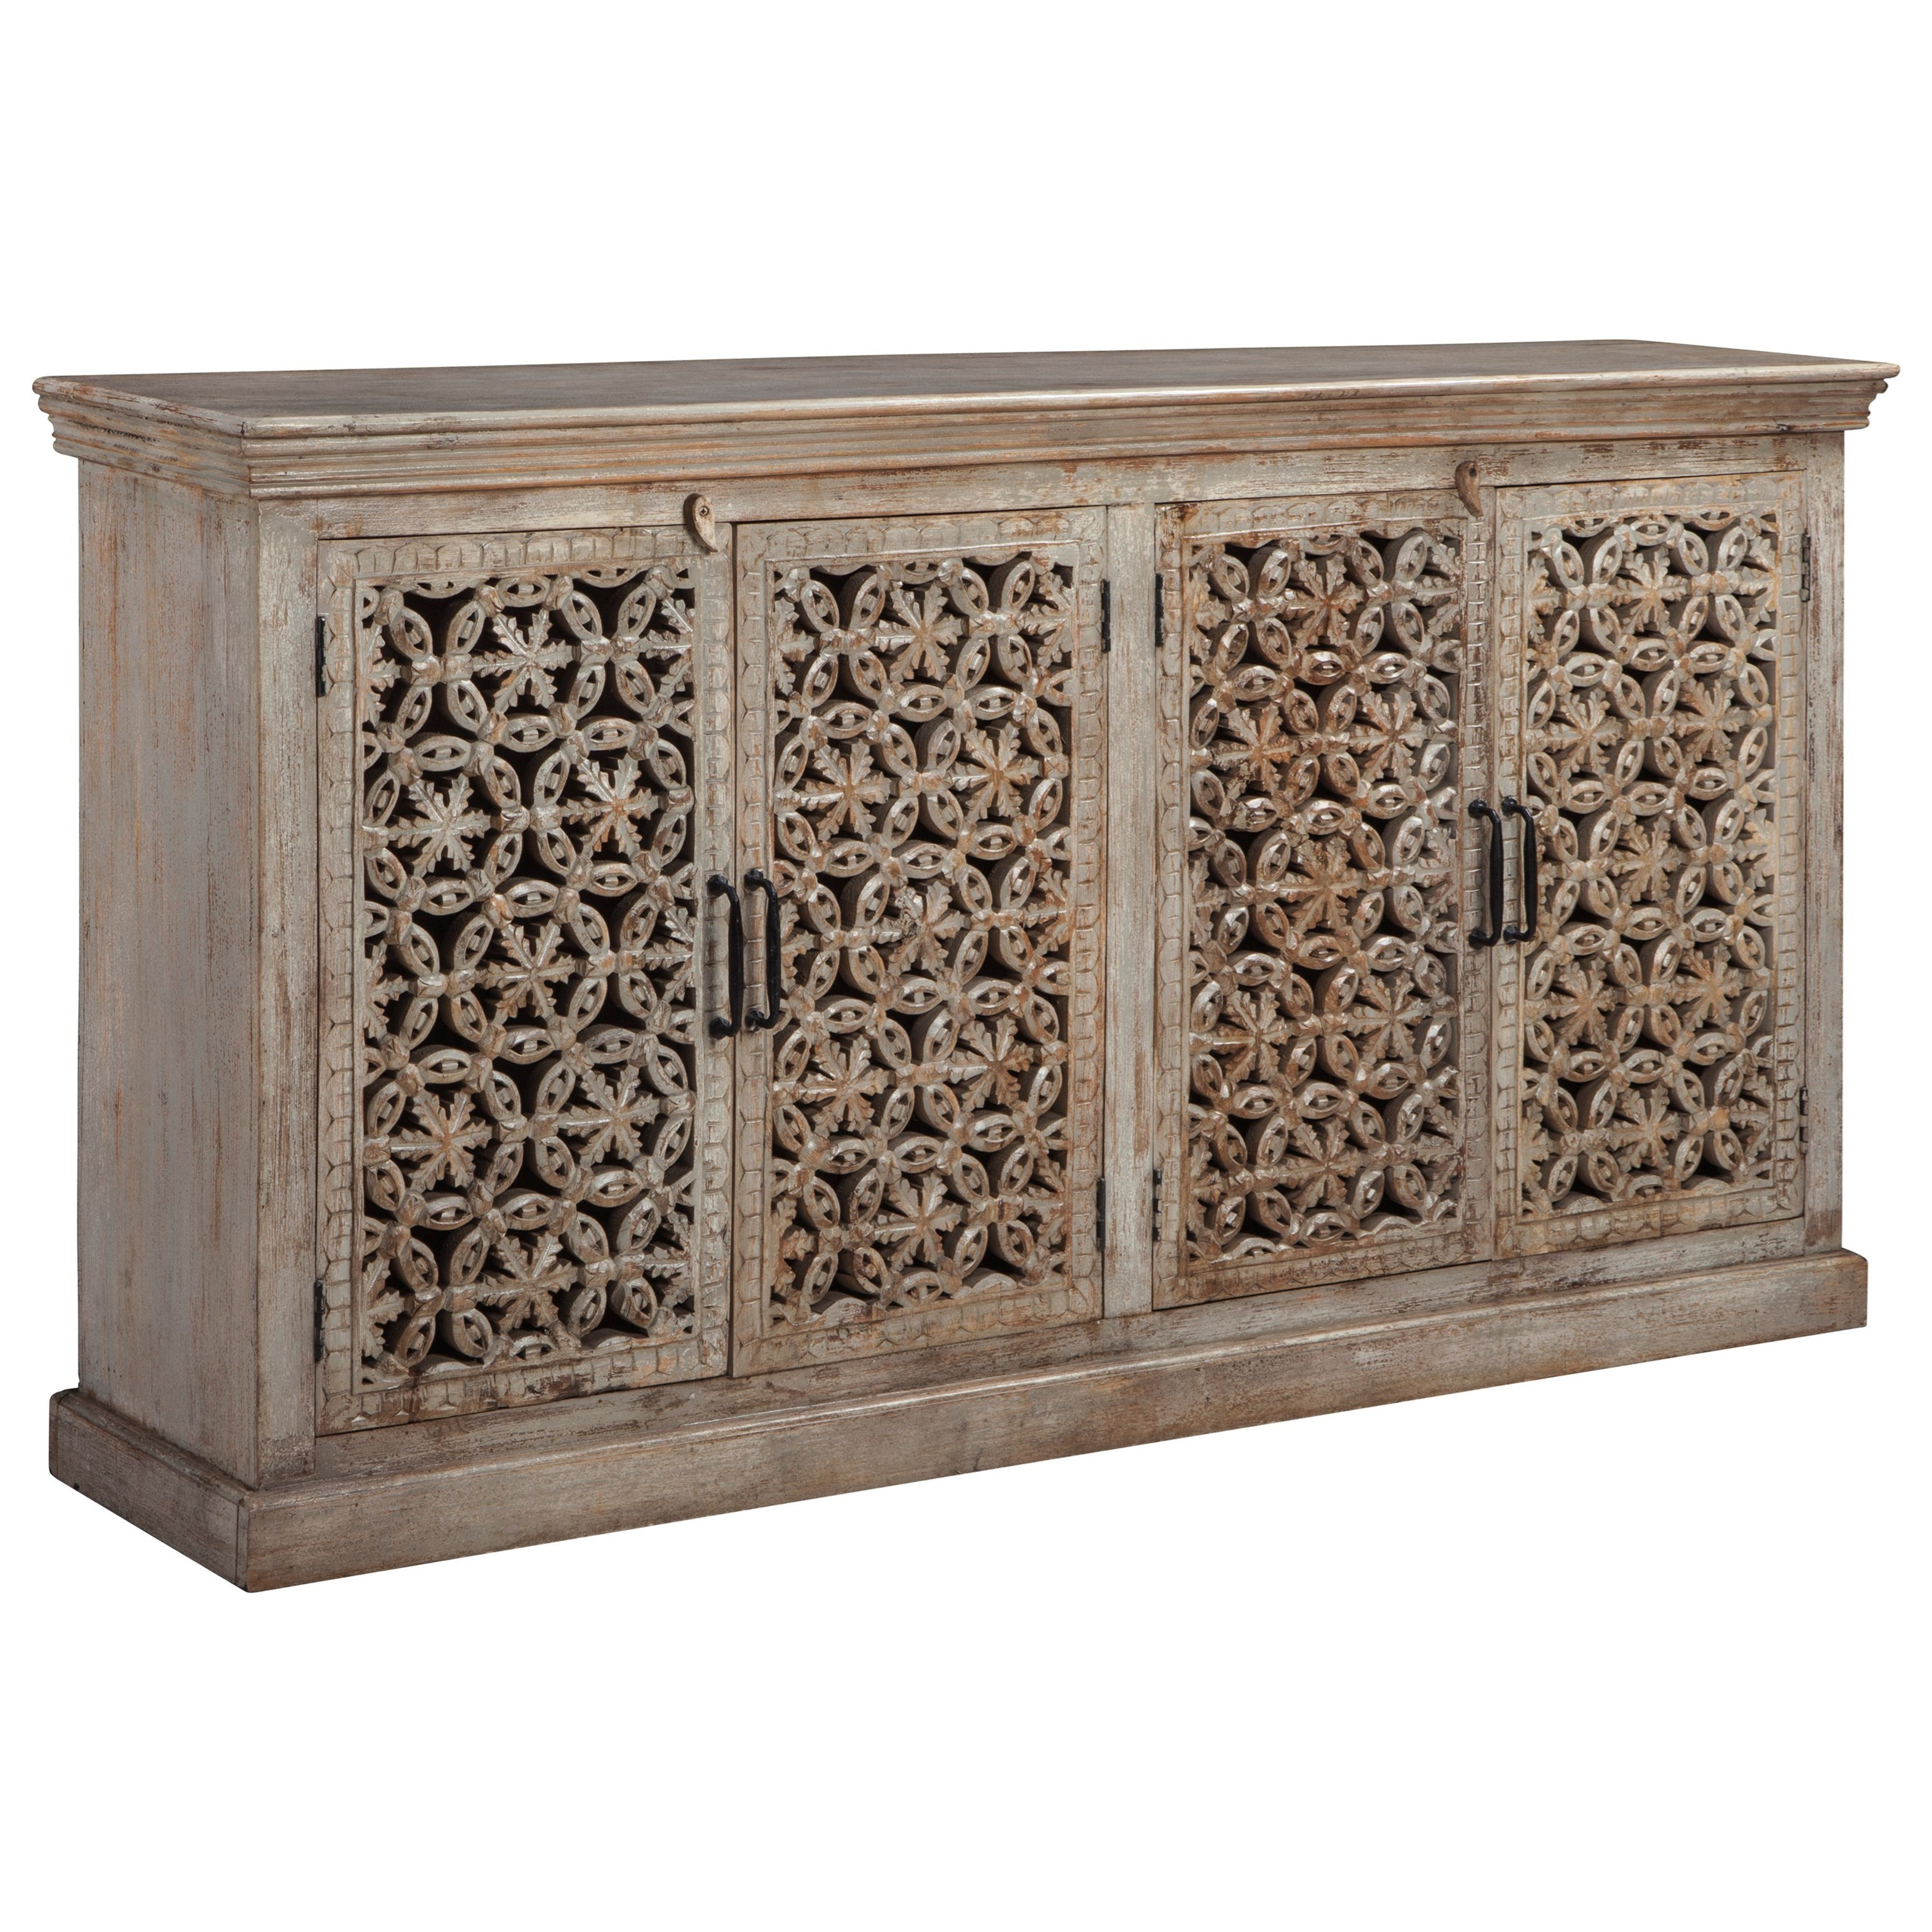 4-Door Hand-Carved Console